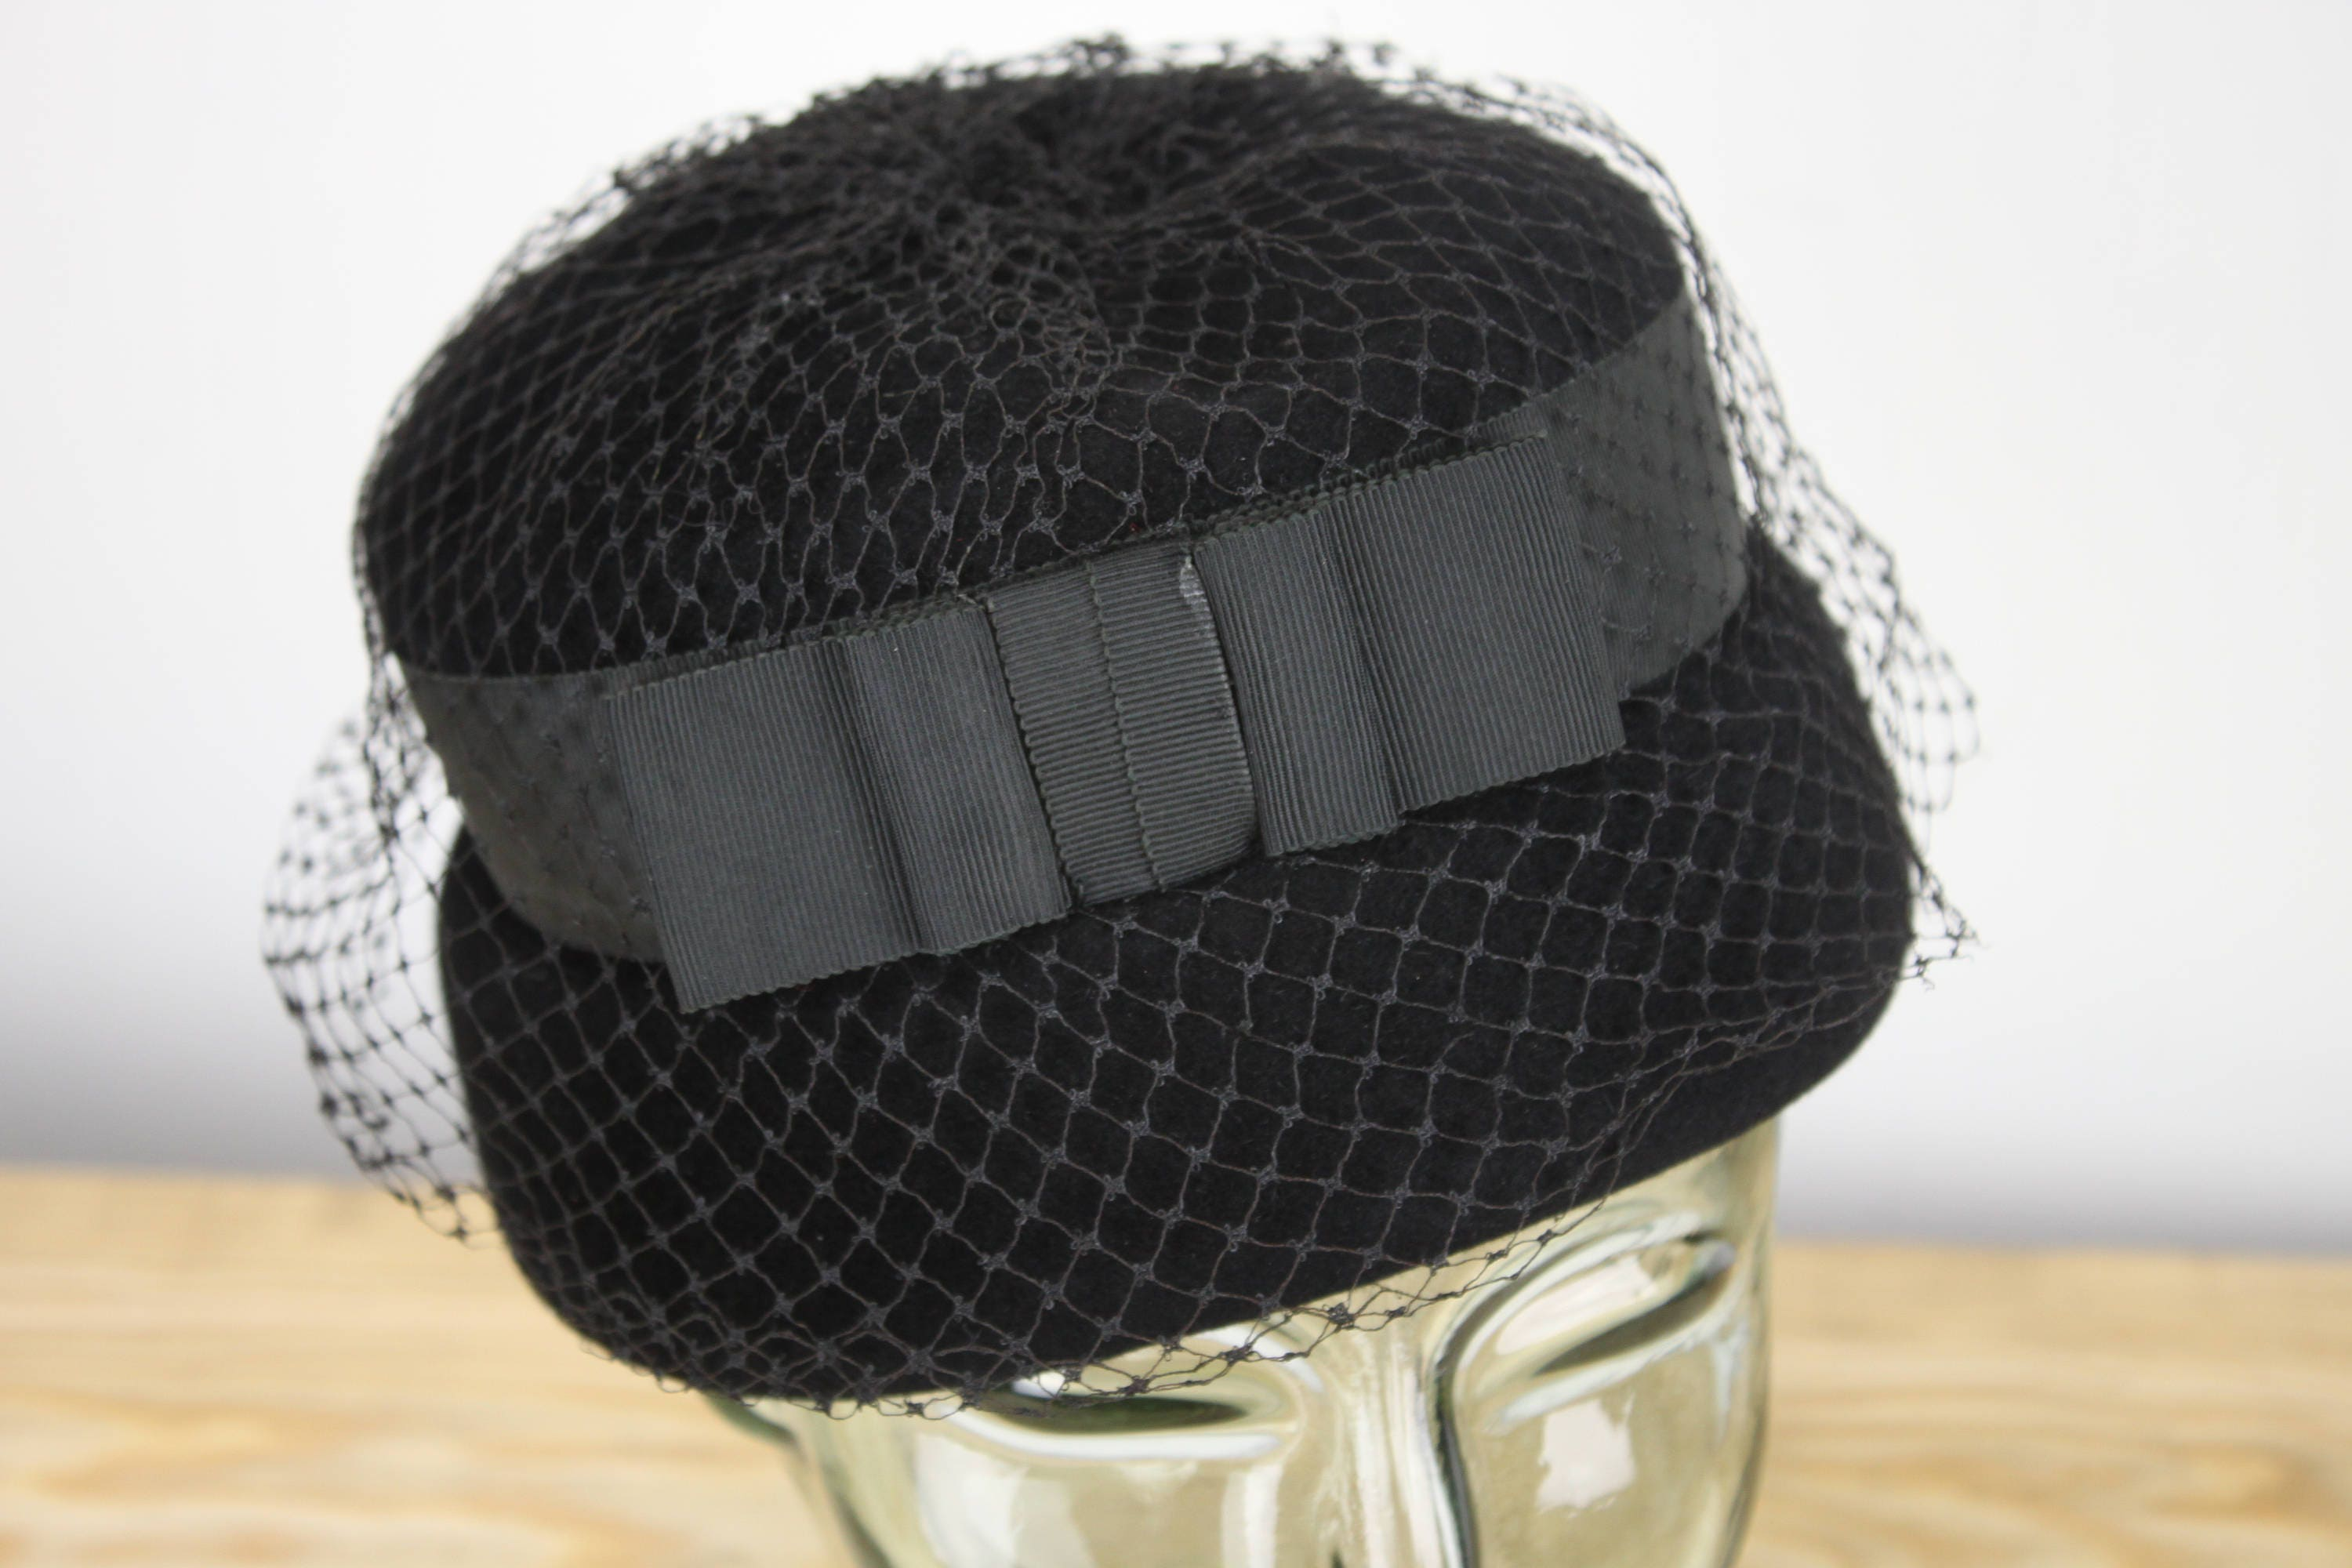 38a77474982 Vintage Women s Hat - Venus - Black - Genuine Velour - Ribbon   Viel ...